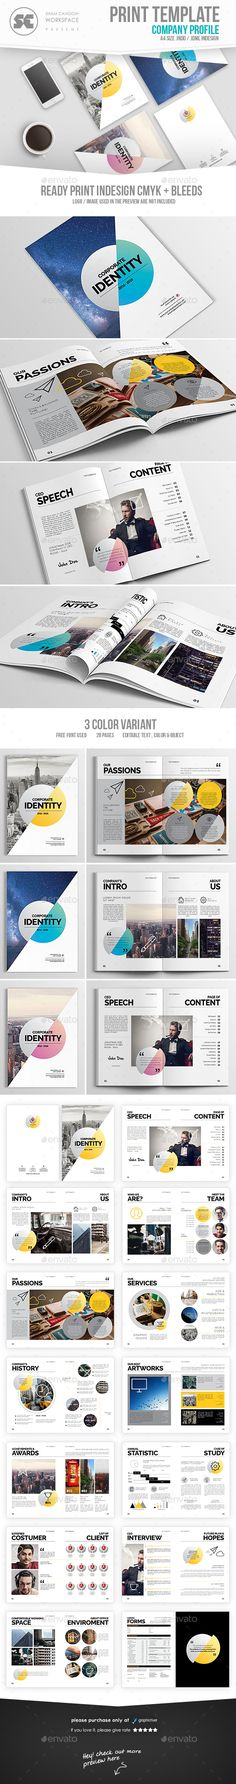 Clean Company Profile Brochure Template InDesign INDD #download - corporate profile template